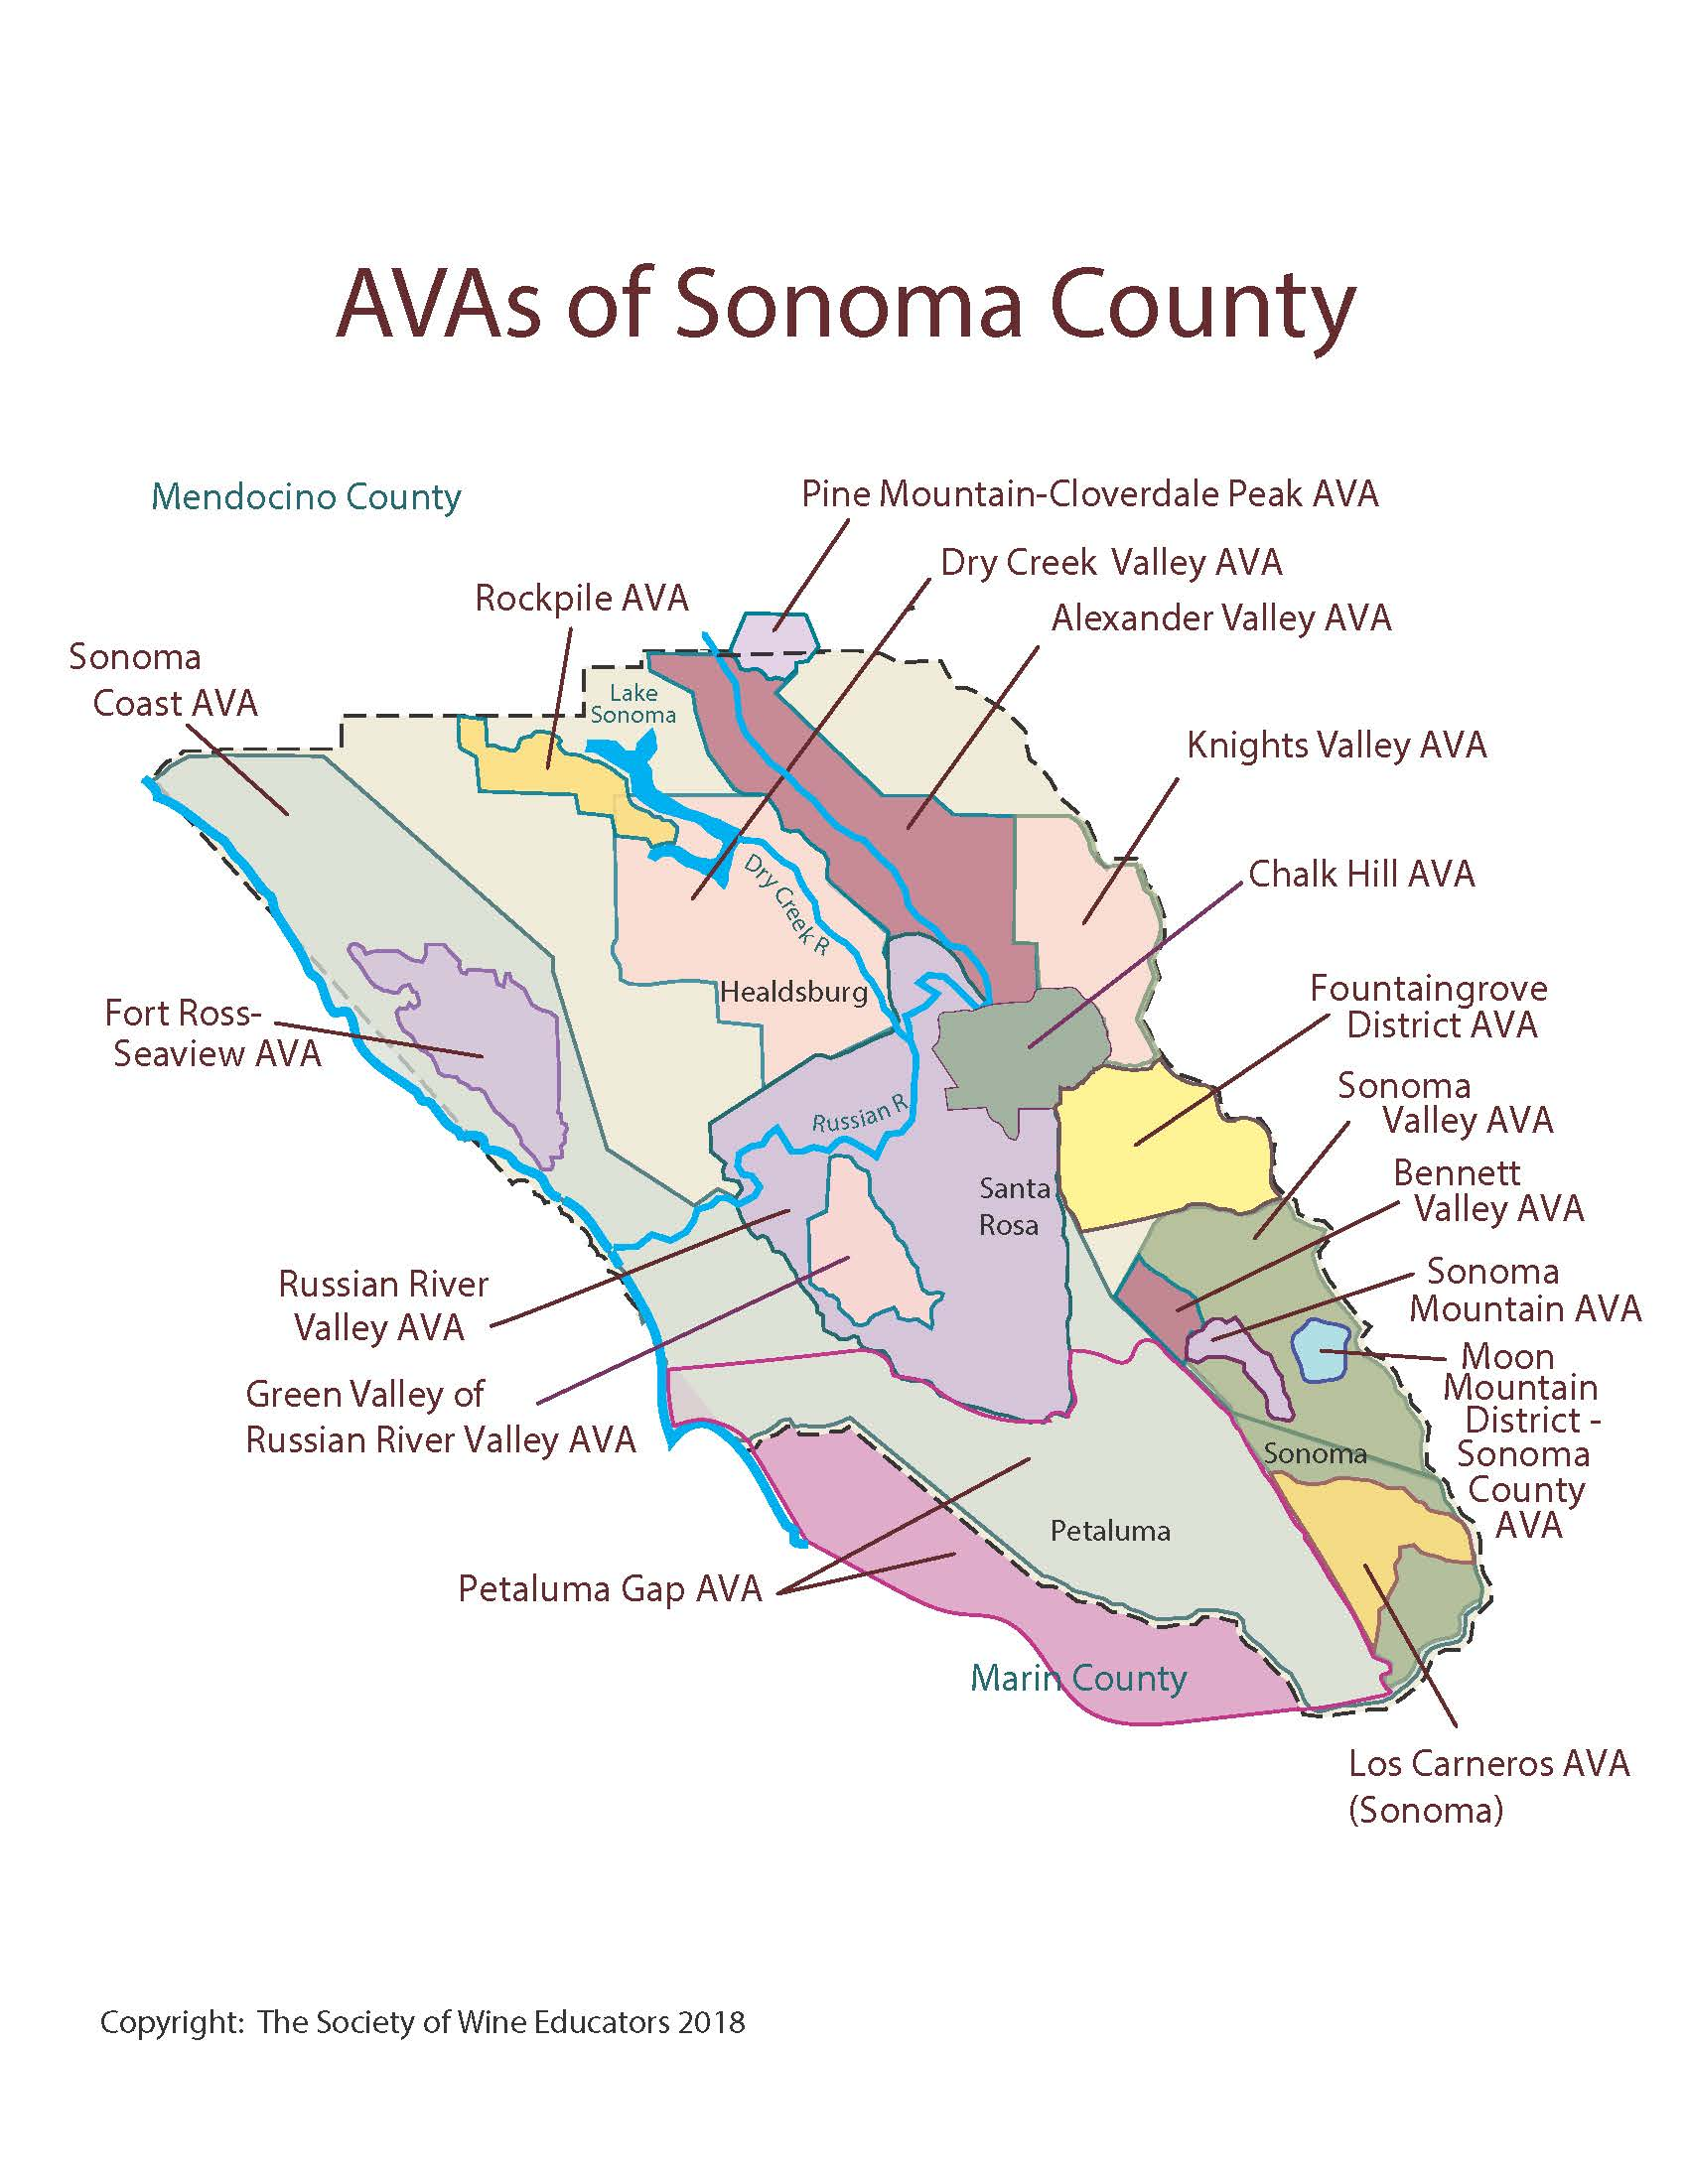 California—Sonoma County: SWE Map 2018 – Wine, Wit, and Wisdom on sonoma california wine tours, sonoma wine map, sonoma vineyards map, sonoma california restaurant map, sonoma california coast map,